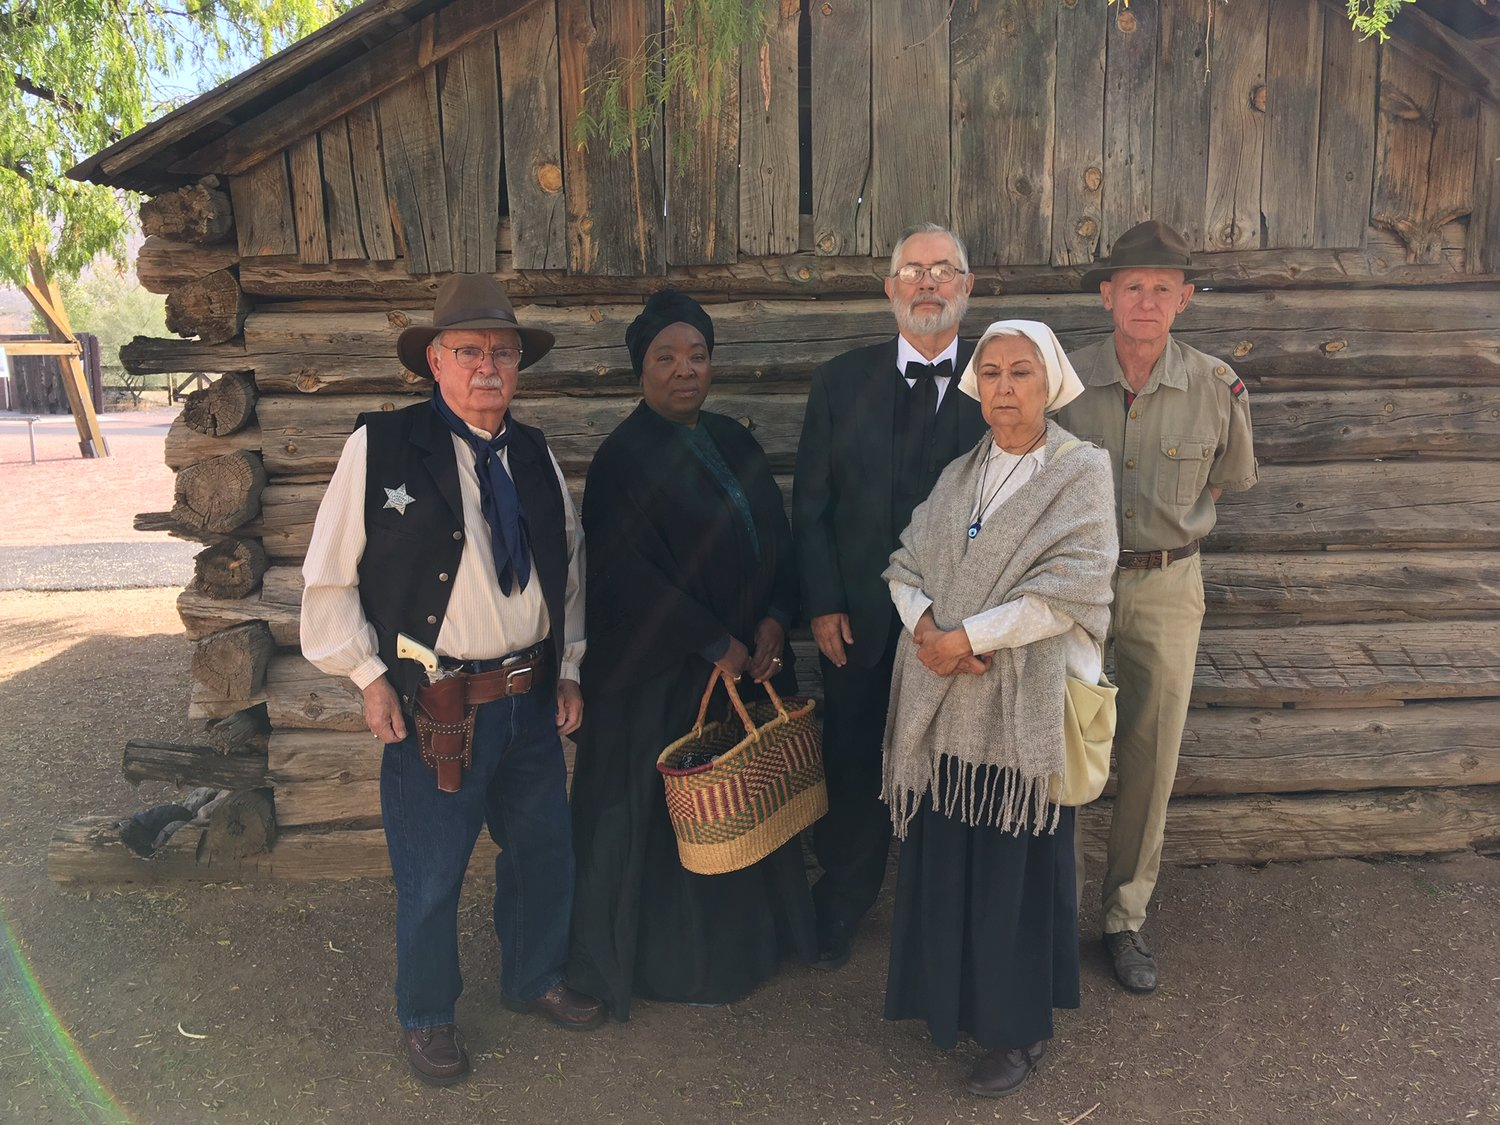 """A Christmas to Remember"" performed theater troupe Bob Distlehorst, Sara Addision, Stan Morgan, Angie Morgan, and Neil Fuller will be at the New Mexico Farm and Ranch Heritage Museum on Dec. 7."